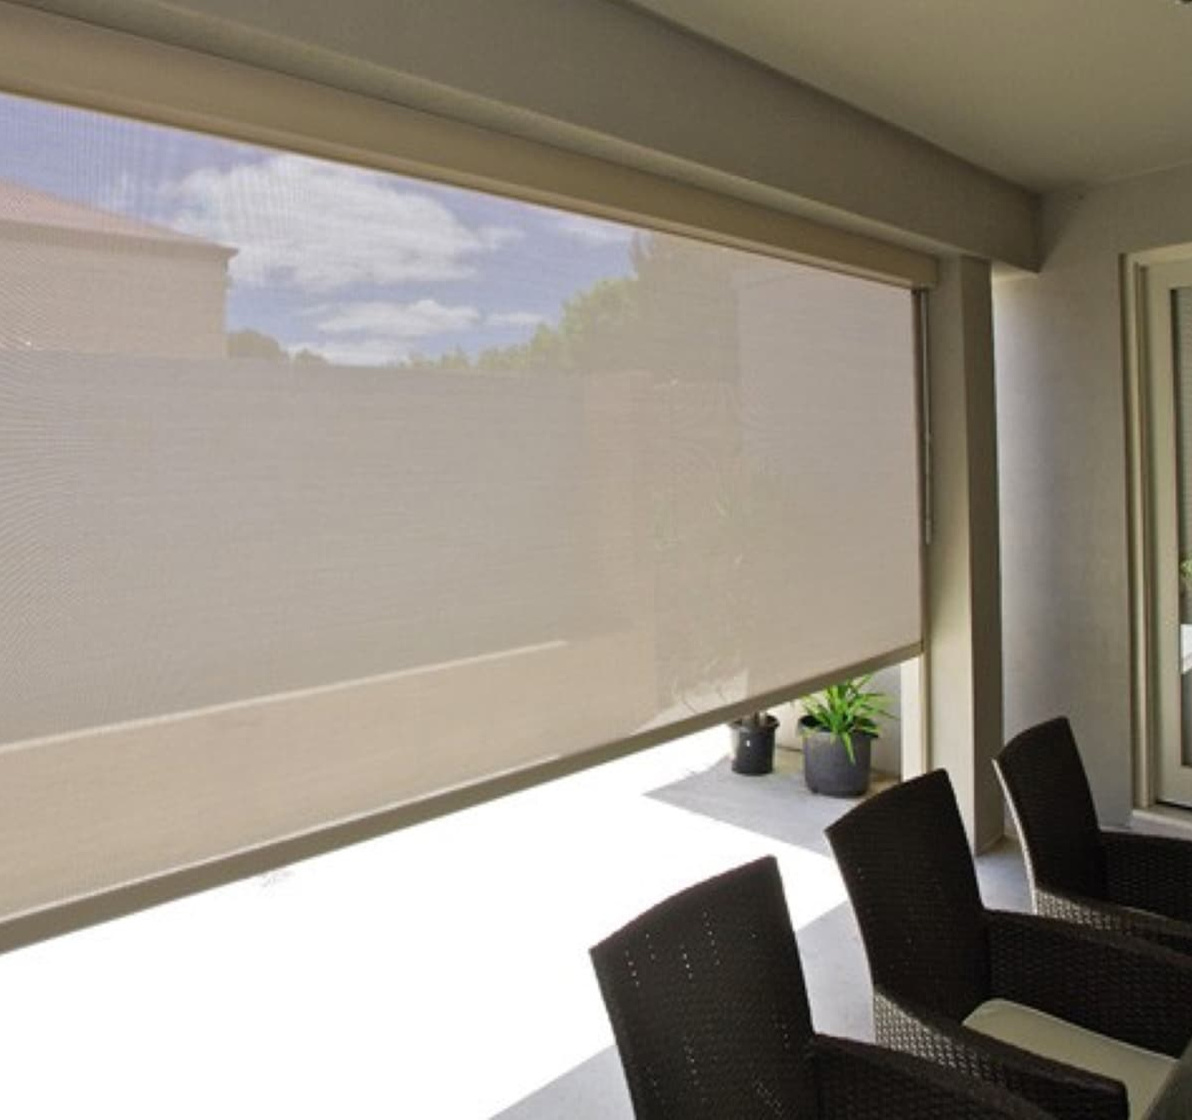 China External Automatic Zip Track Custom Made Electric Window Blind Black Roller Blinds Photos Pictures Made In China Com